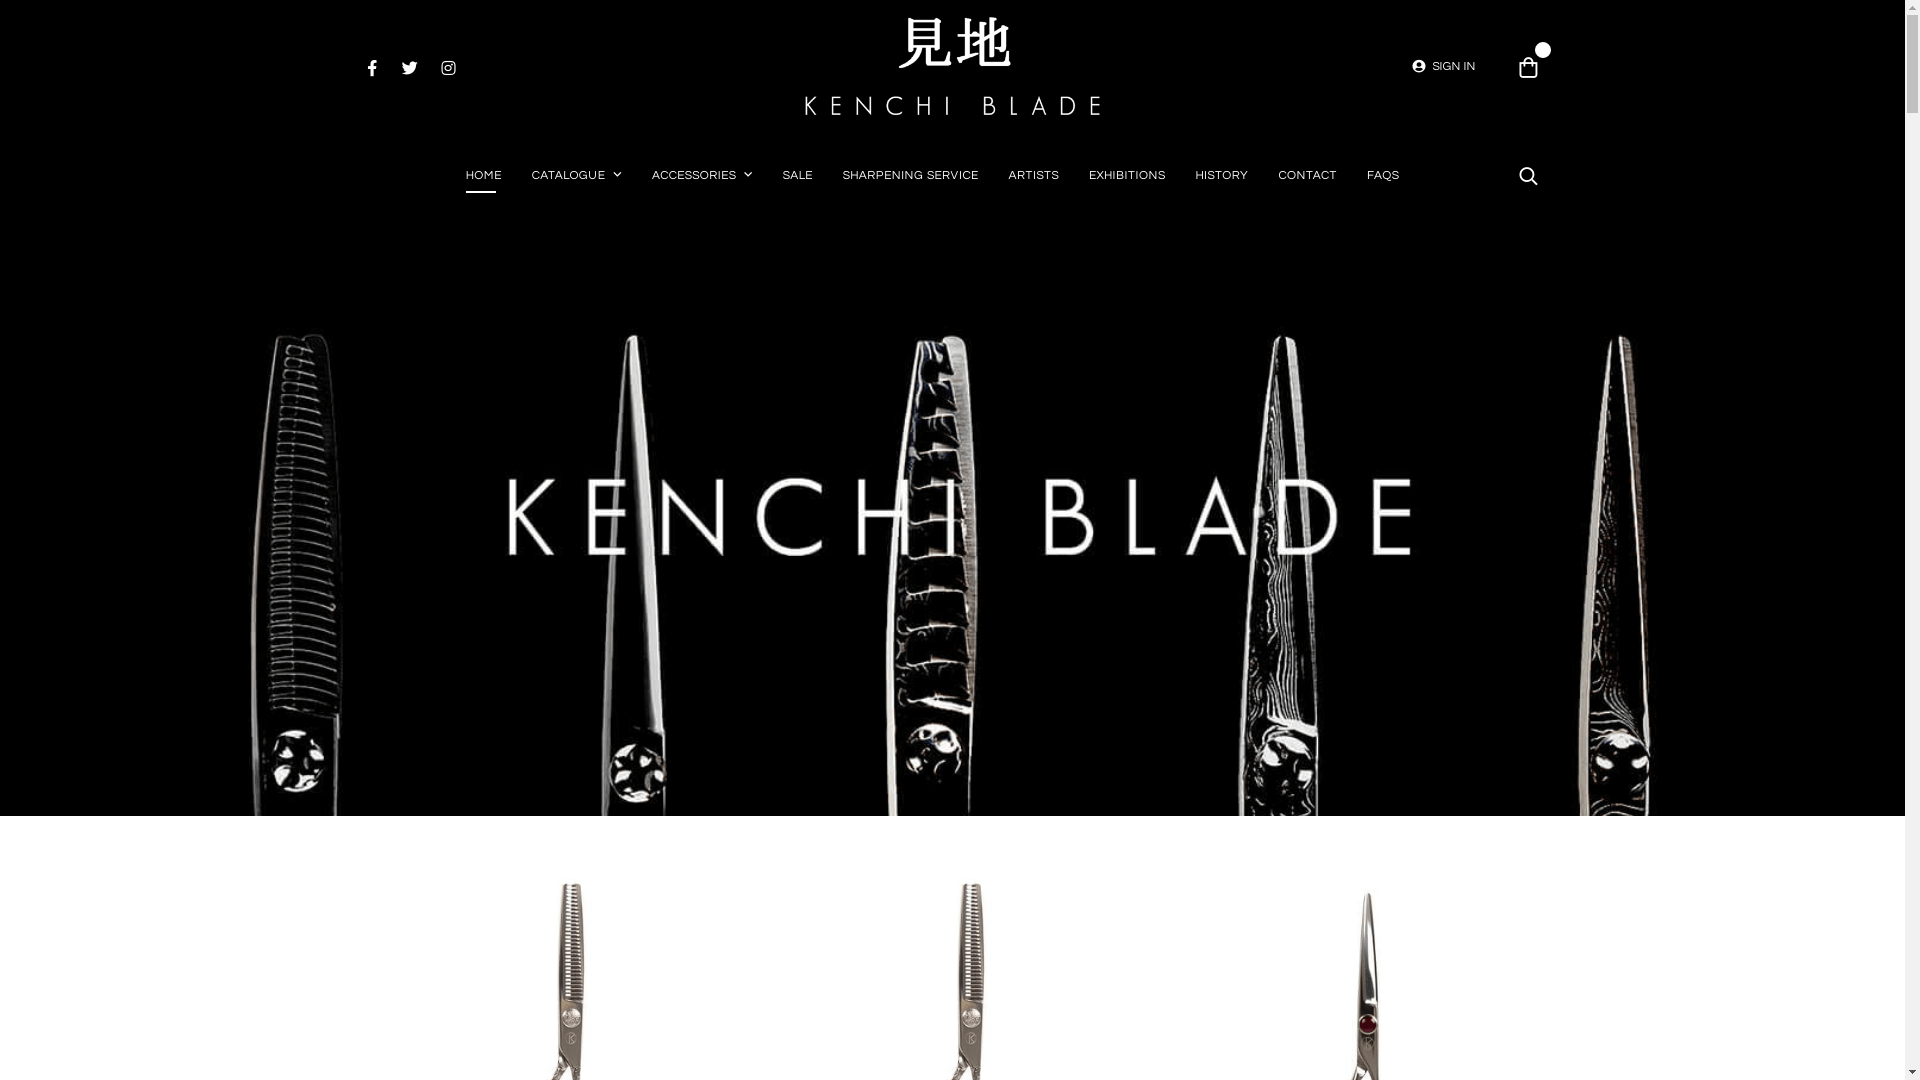 Kenchi Blade – Hand Crafted Professional Japanese Scissors